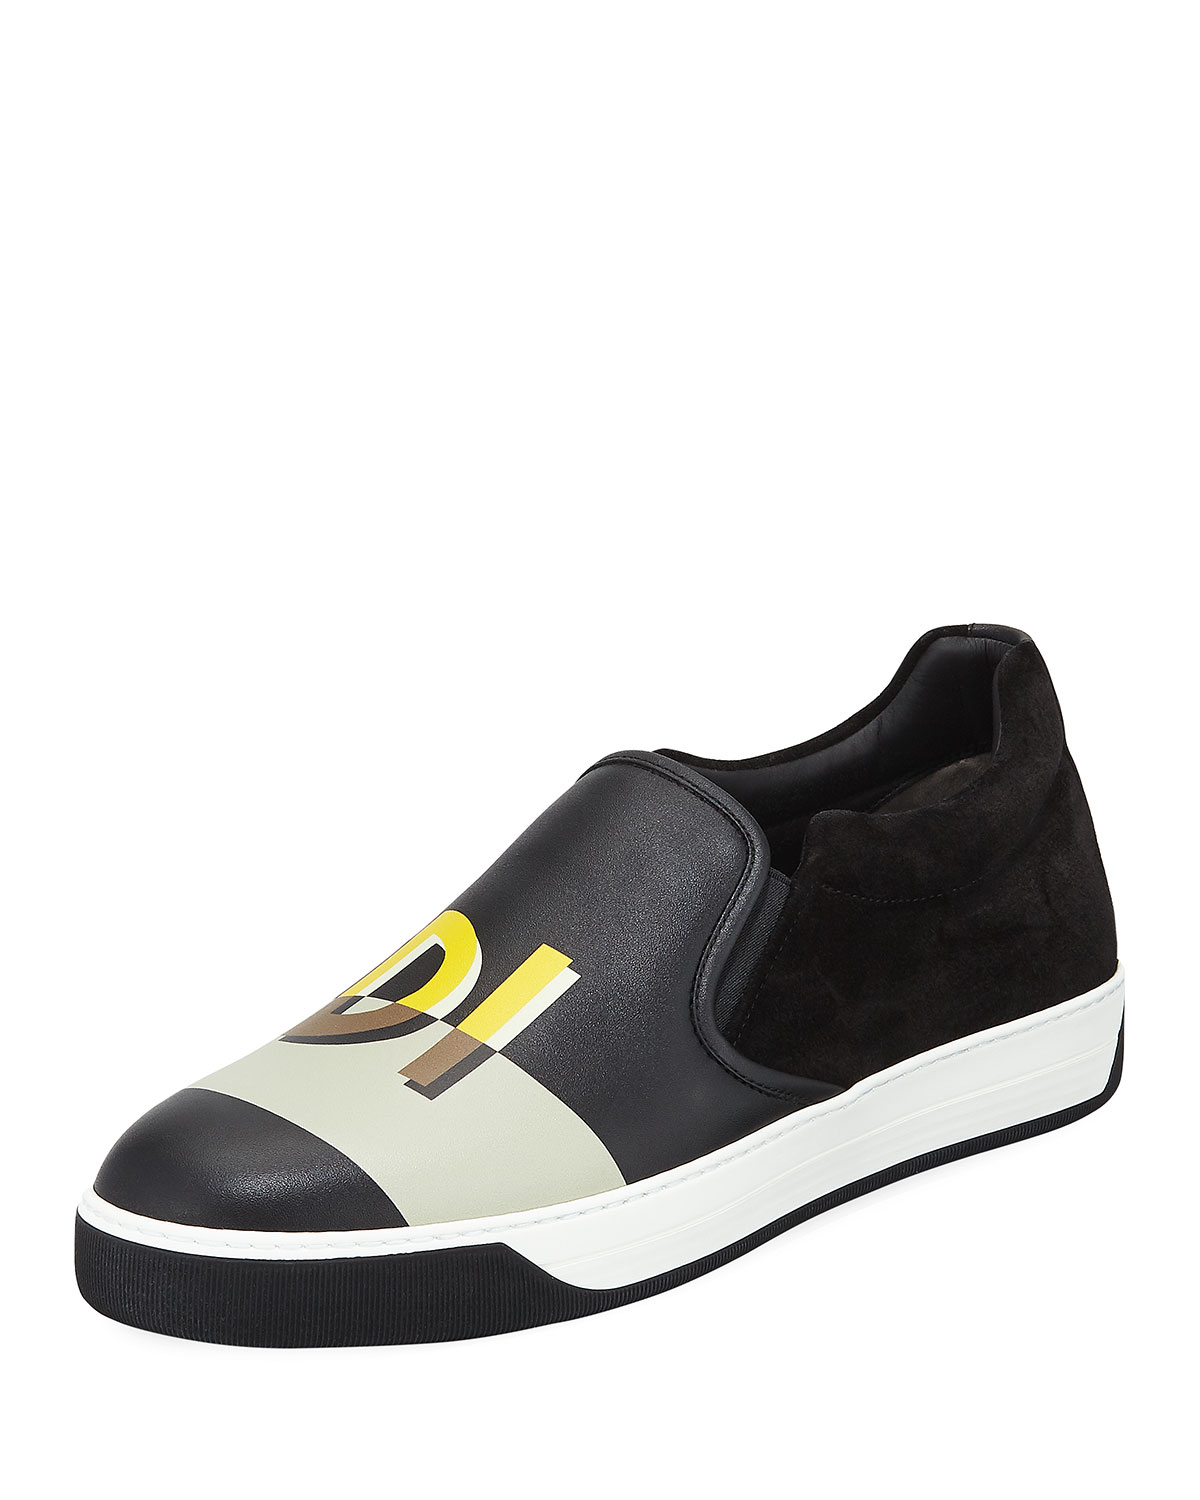 Fendi Vocabulary Men s Leather Slip-On Skate Sneakers  ae61278de